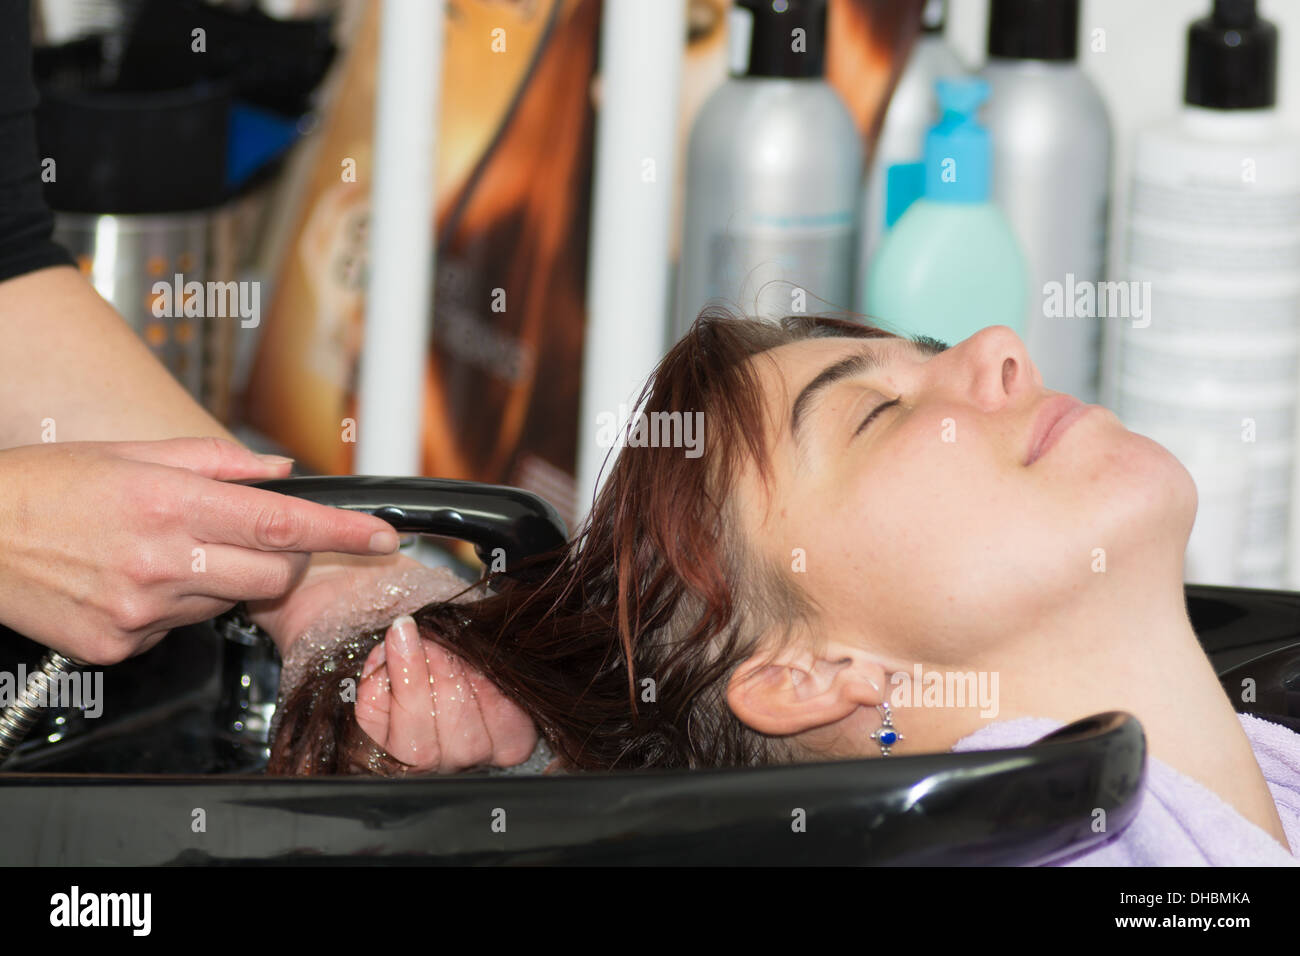 hair care - young woman enjoing hair washing at a hairdresser Stock Photo